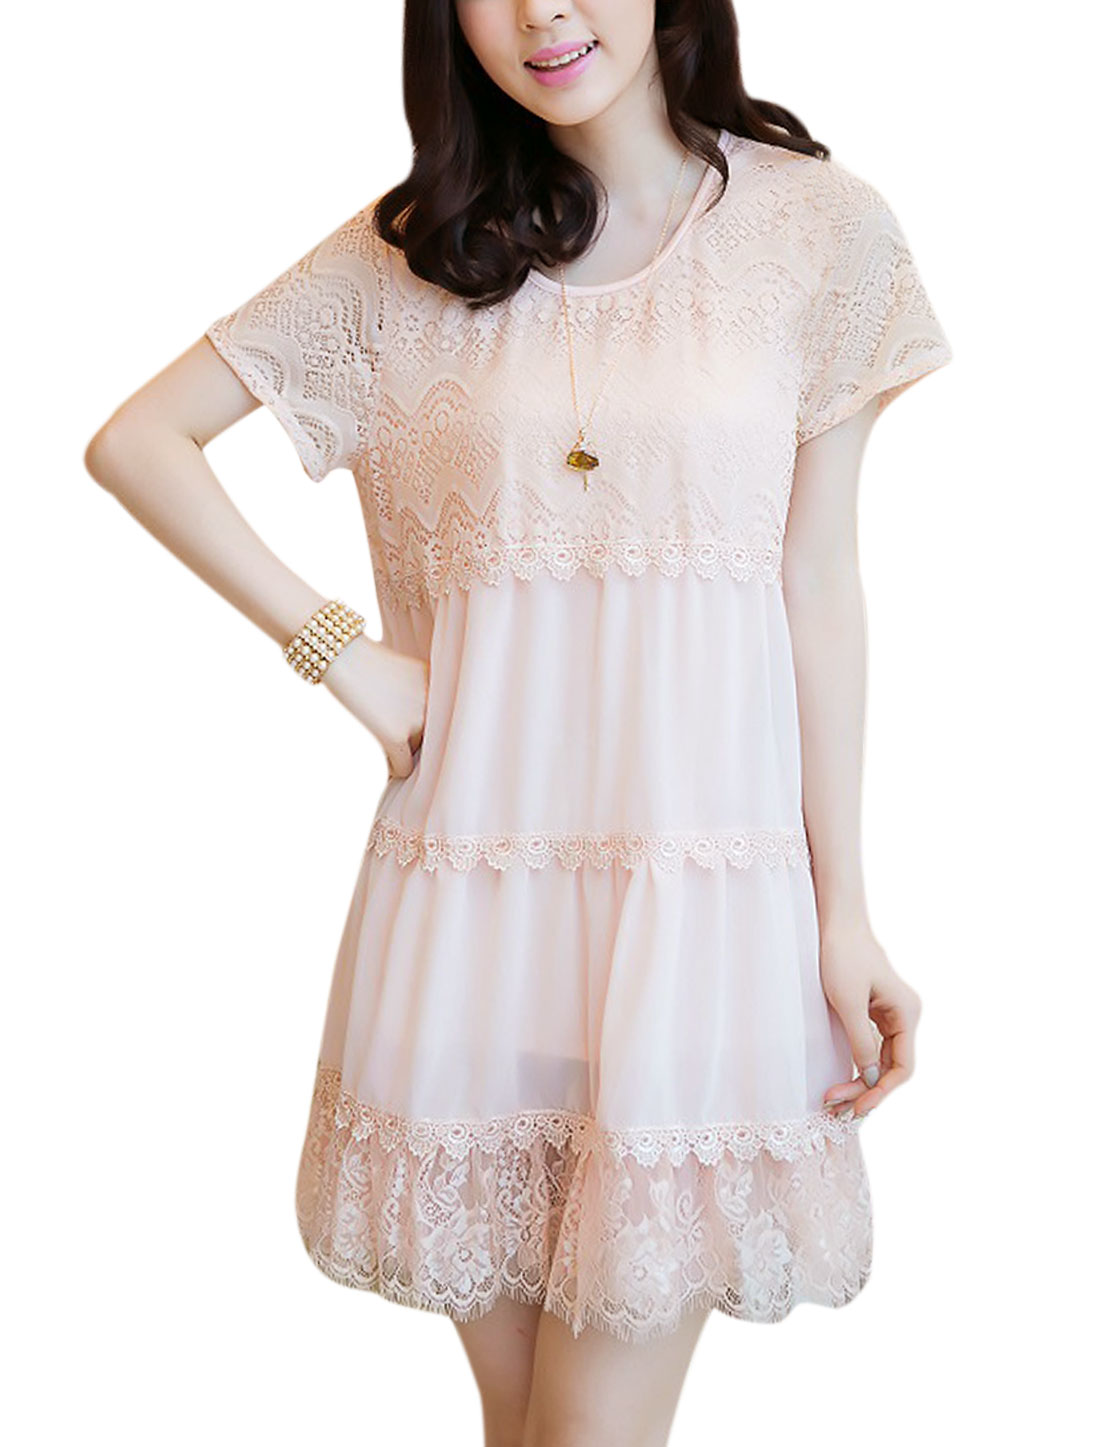 Lady Sweet Short Sleeve Lace Splice Flouncing Hem Chiffon Dress Light Pink S